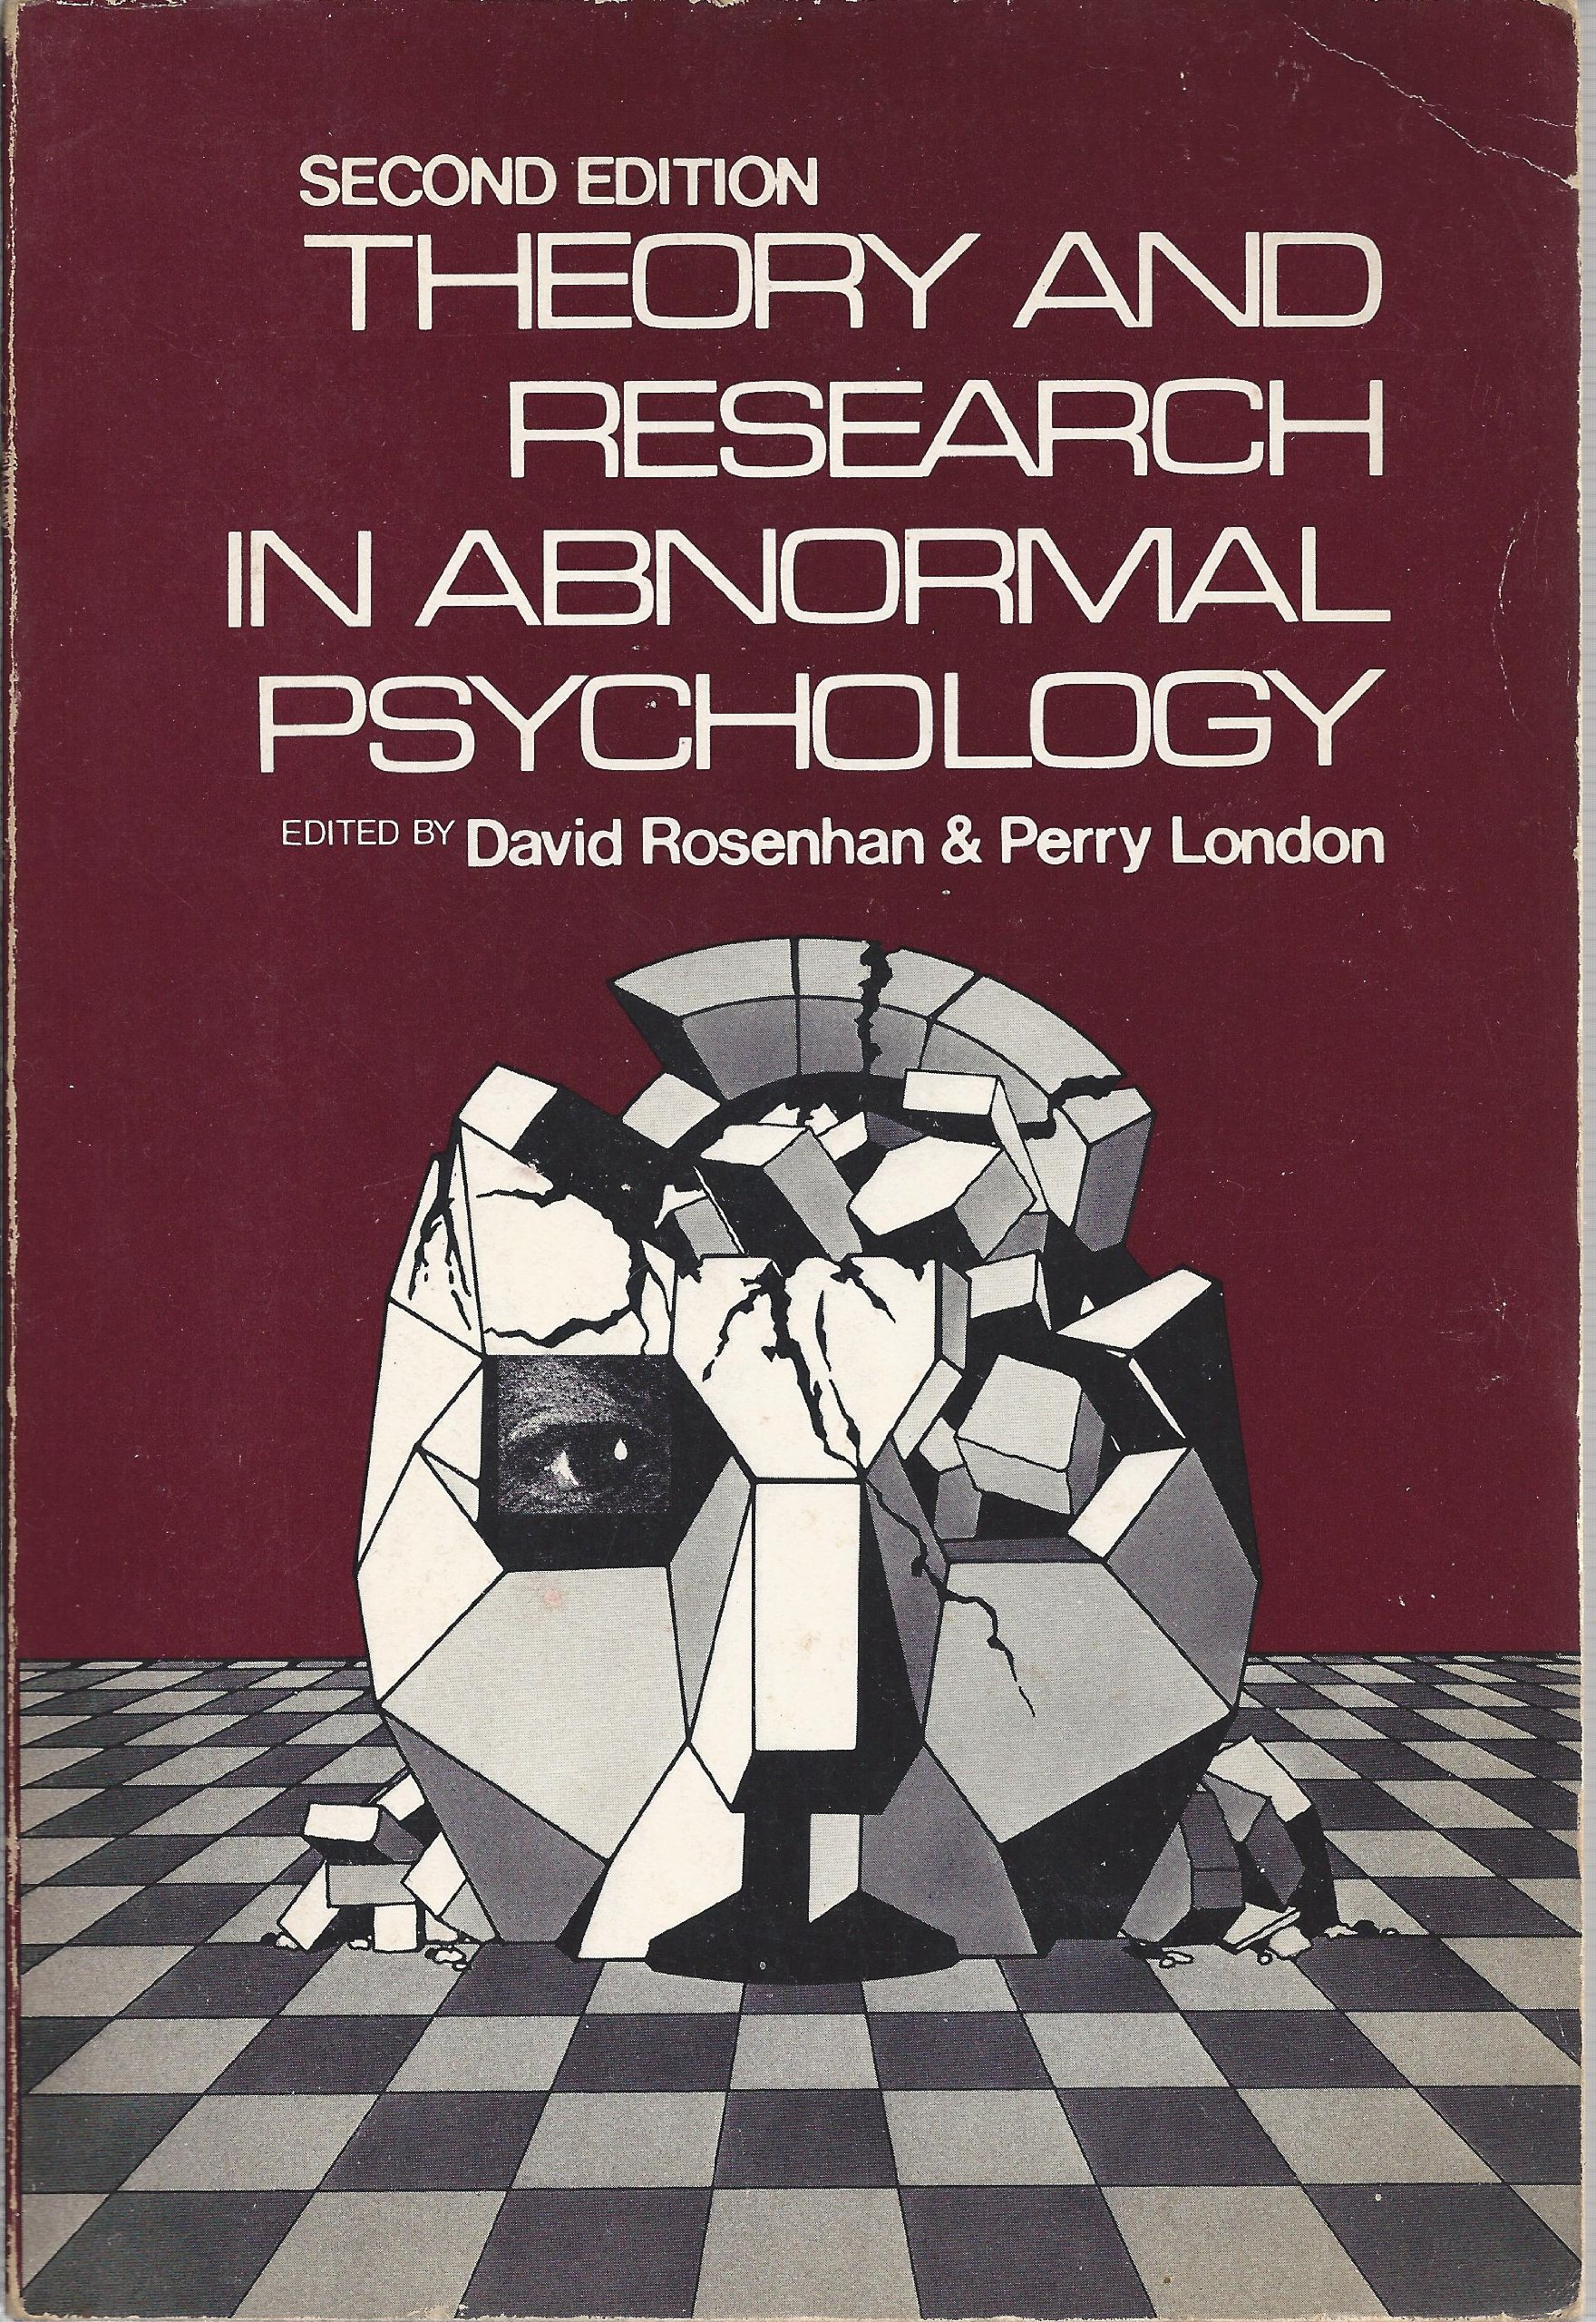 029 A1ibkjukrol Research Paper Abnormal Psychology Topics Unique For Full